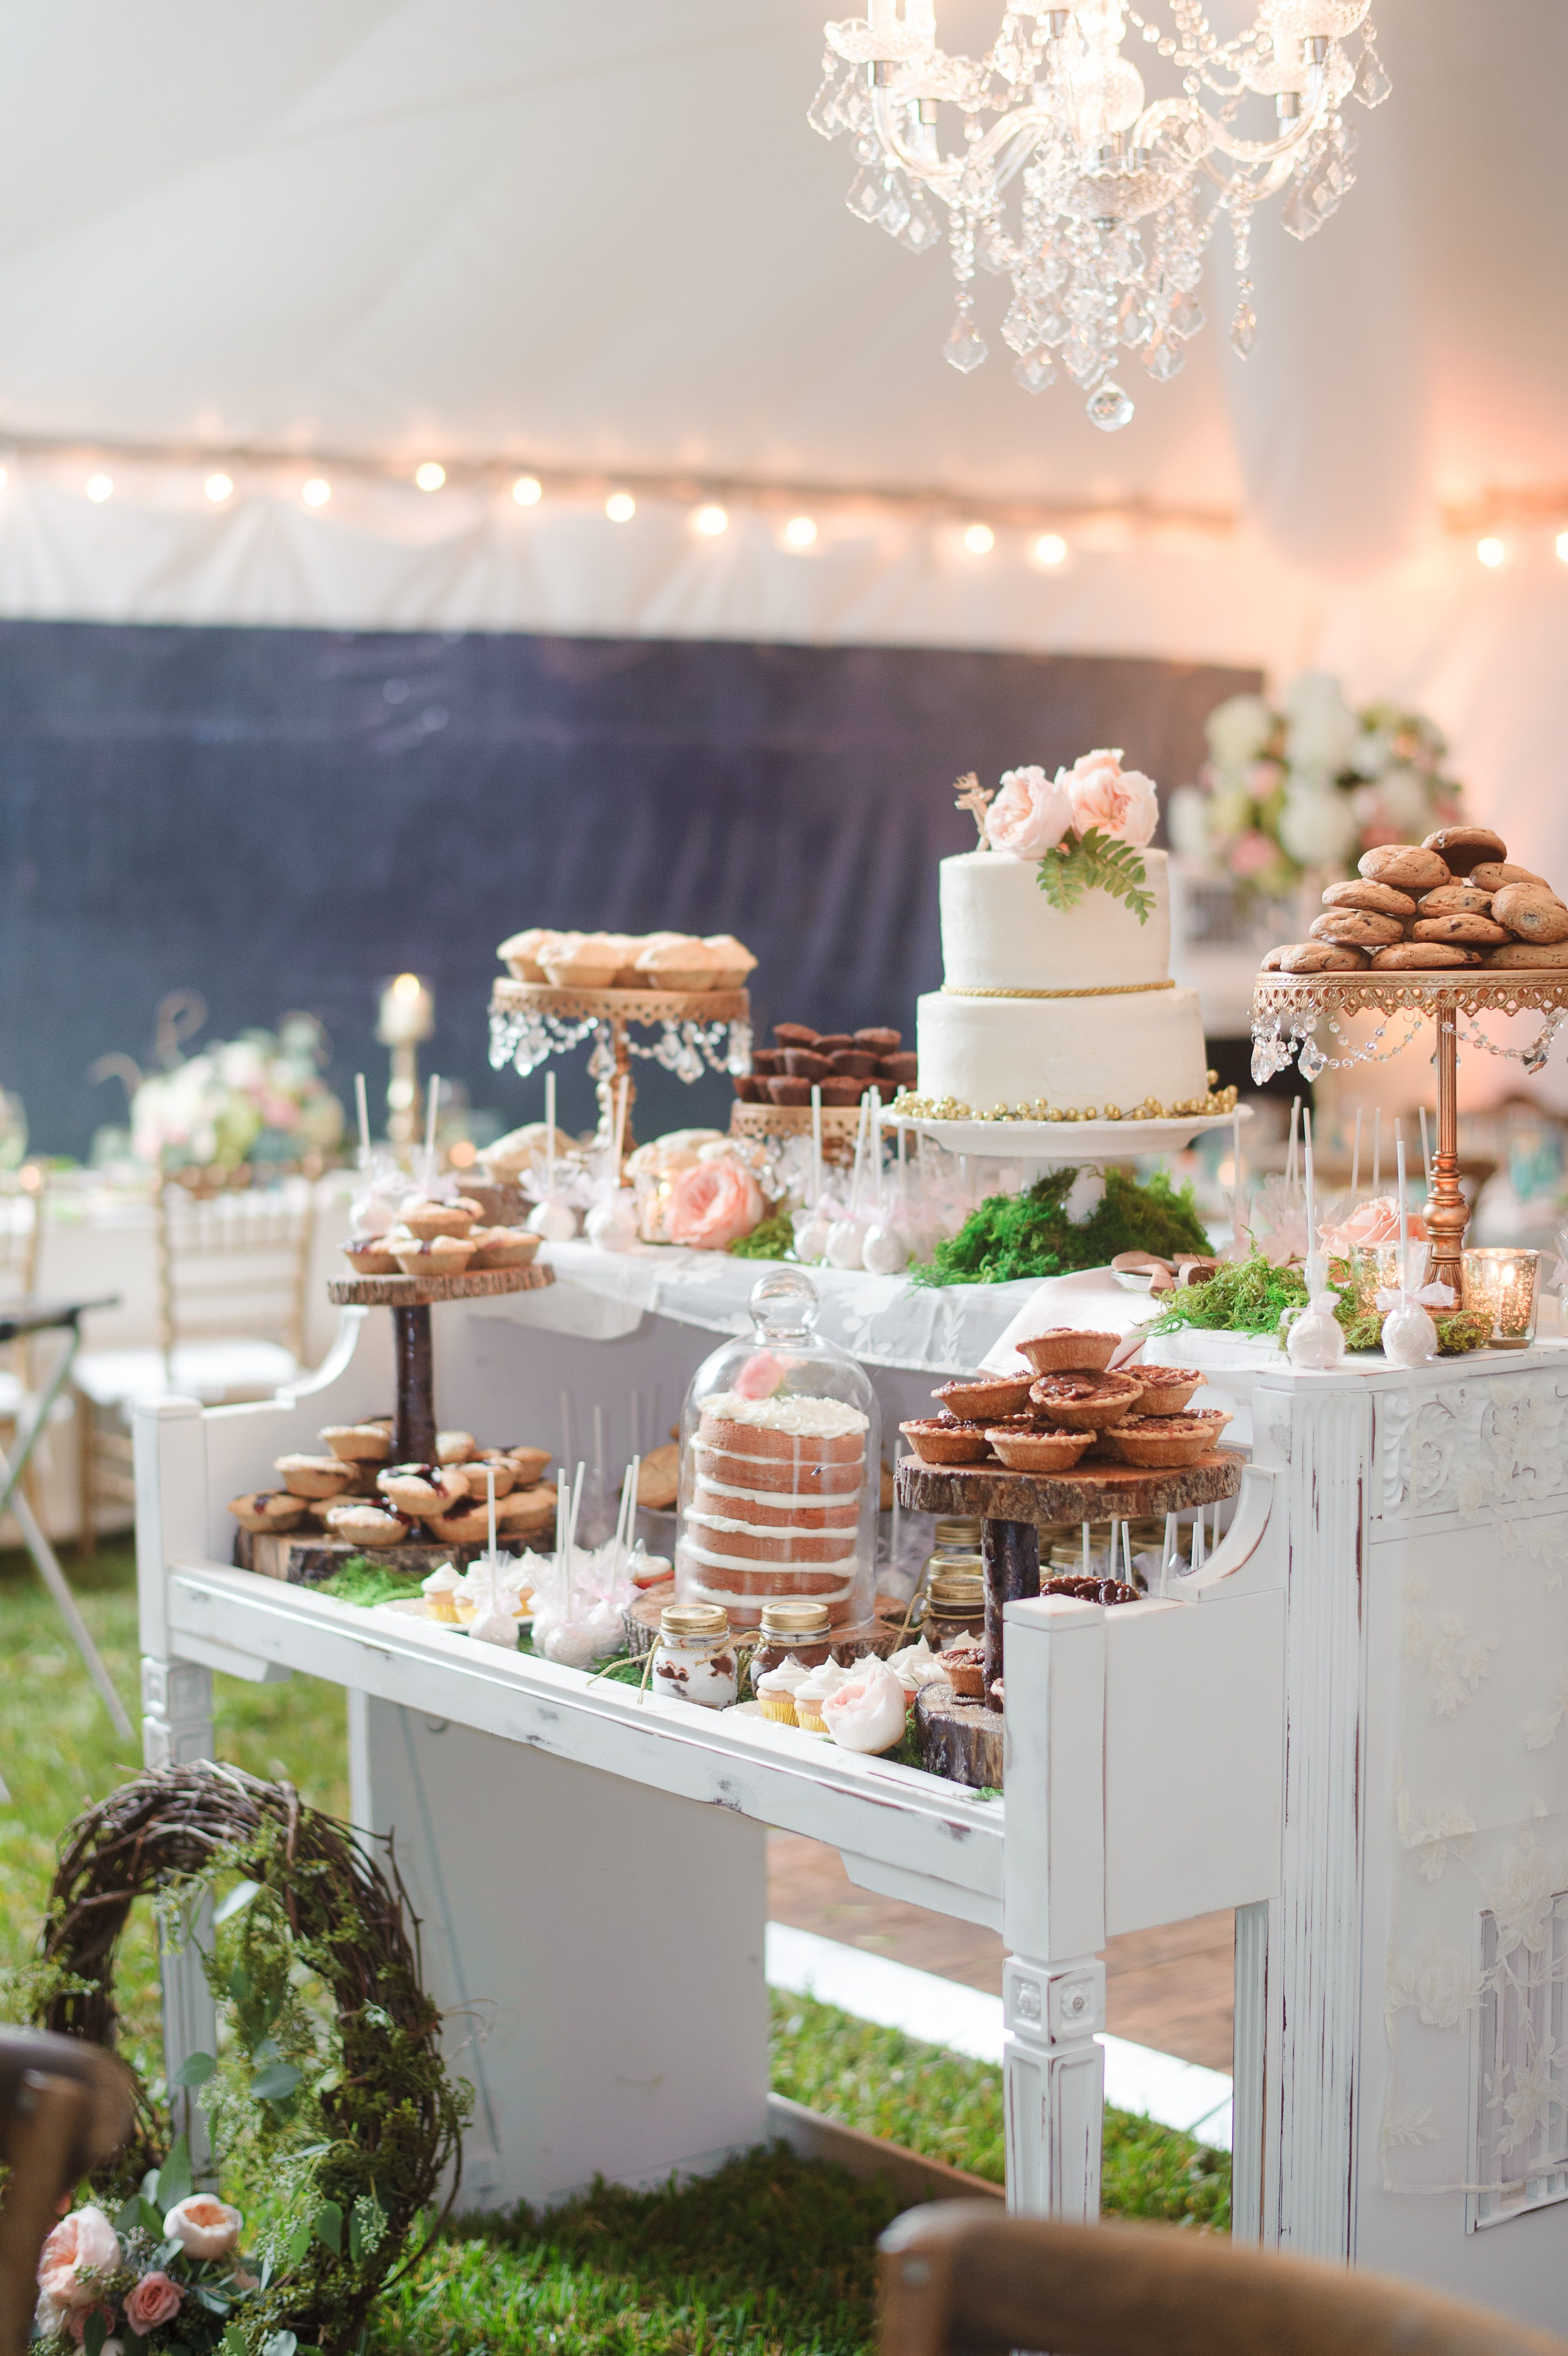 Whimsical White Vintage Piano Dessert Table Wedding Dessert Table Dessert Display Wedding Wedding Cake Table